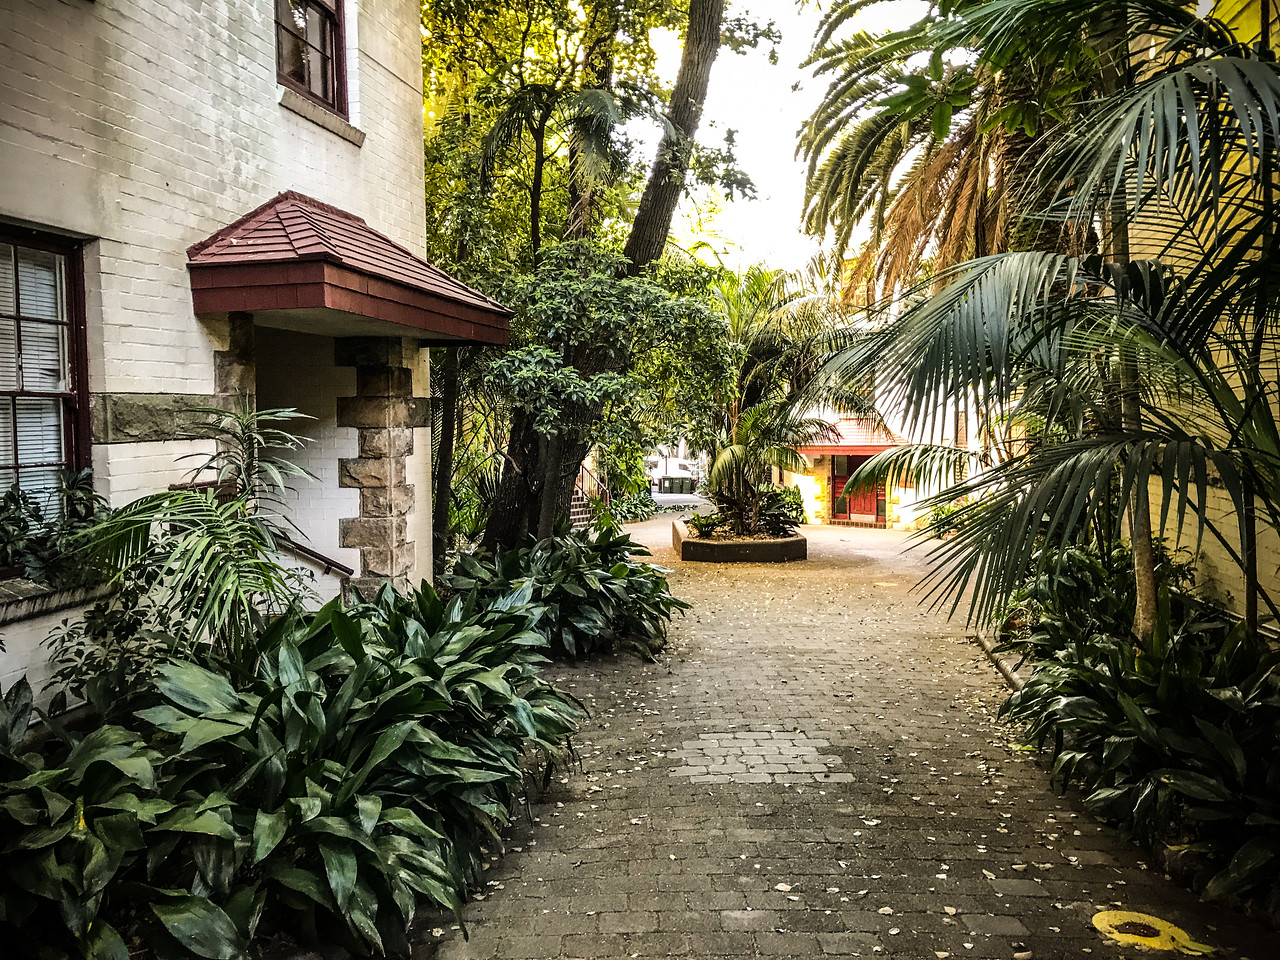 Our courtyard in Rushcutter's Bay.